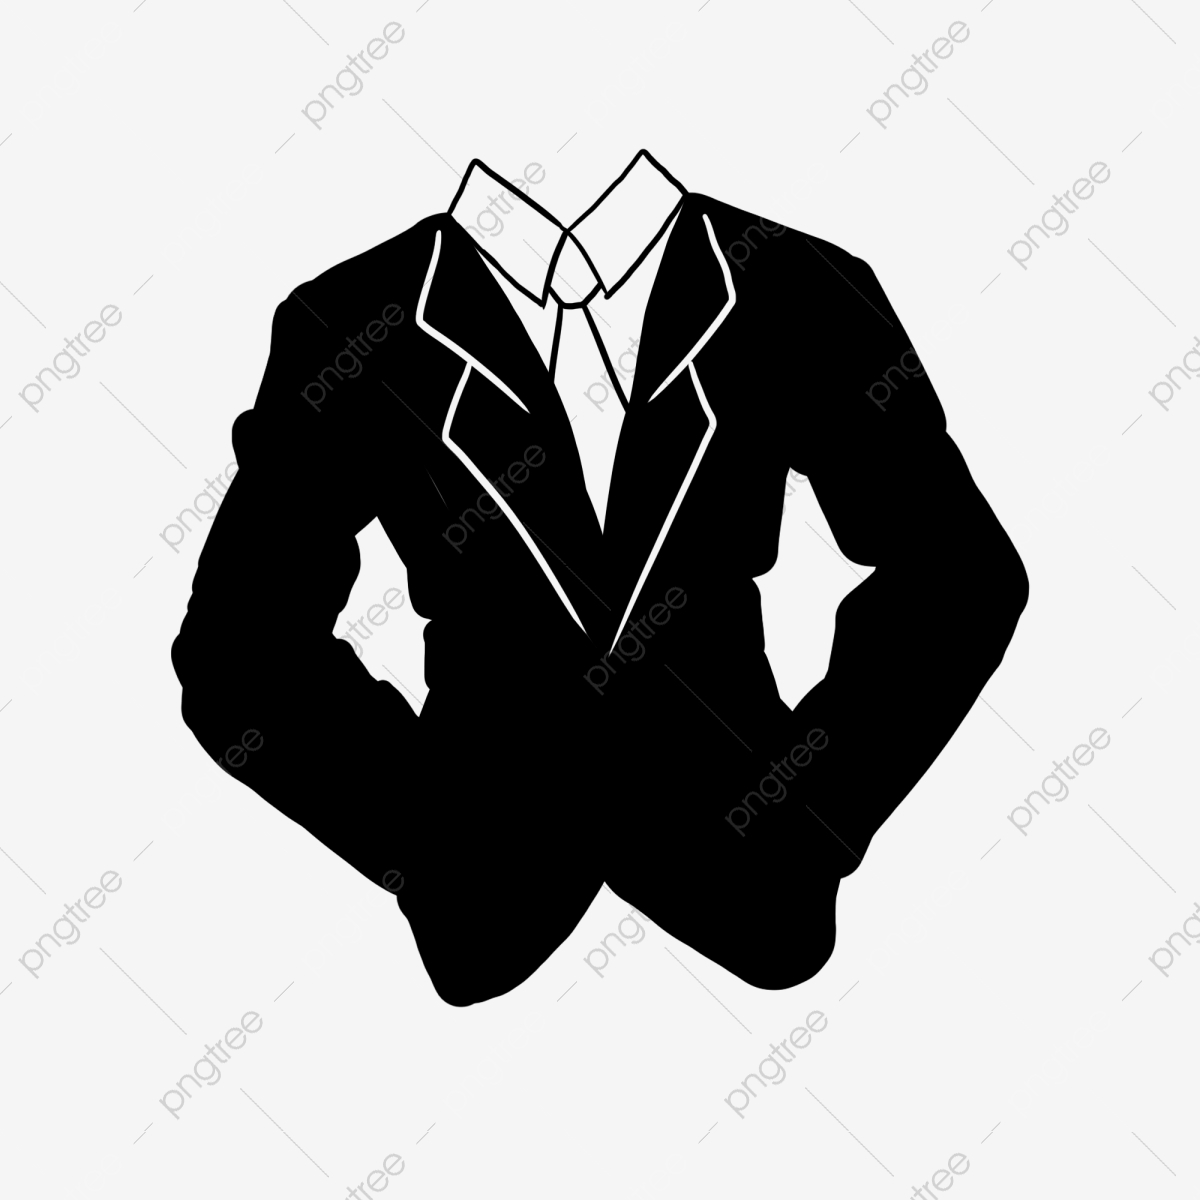 suit png images vector and psd files free download on pngtree https pngtree com freepng simple and handsome black suit 4543358 html